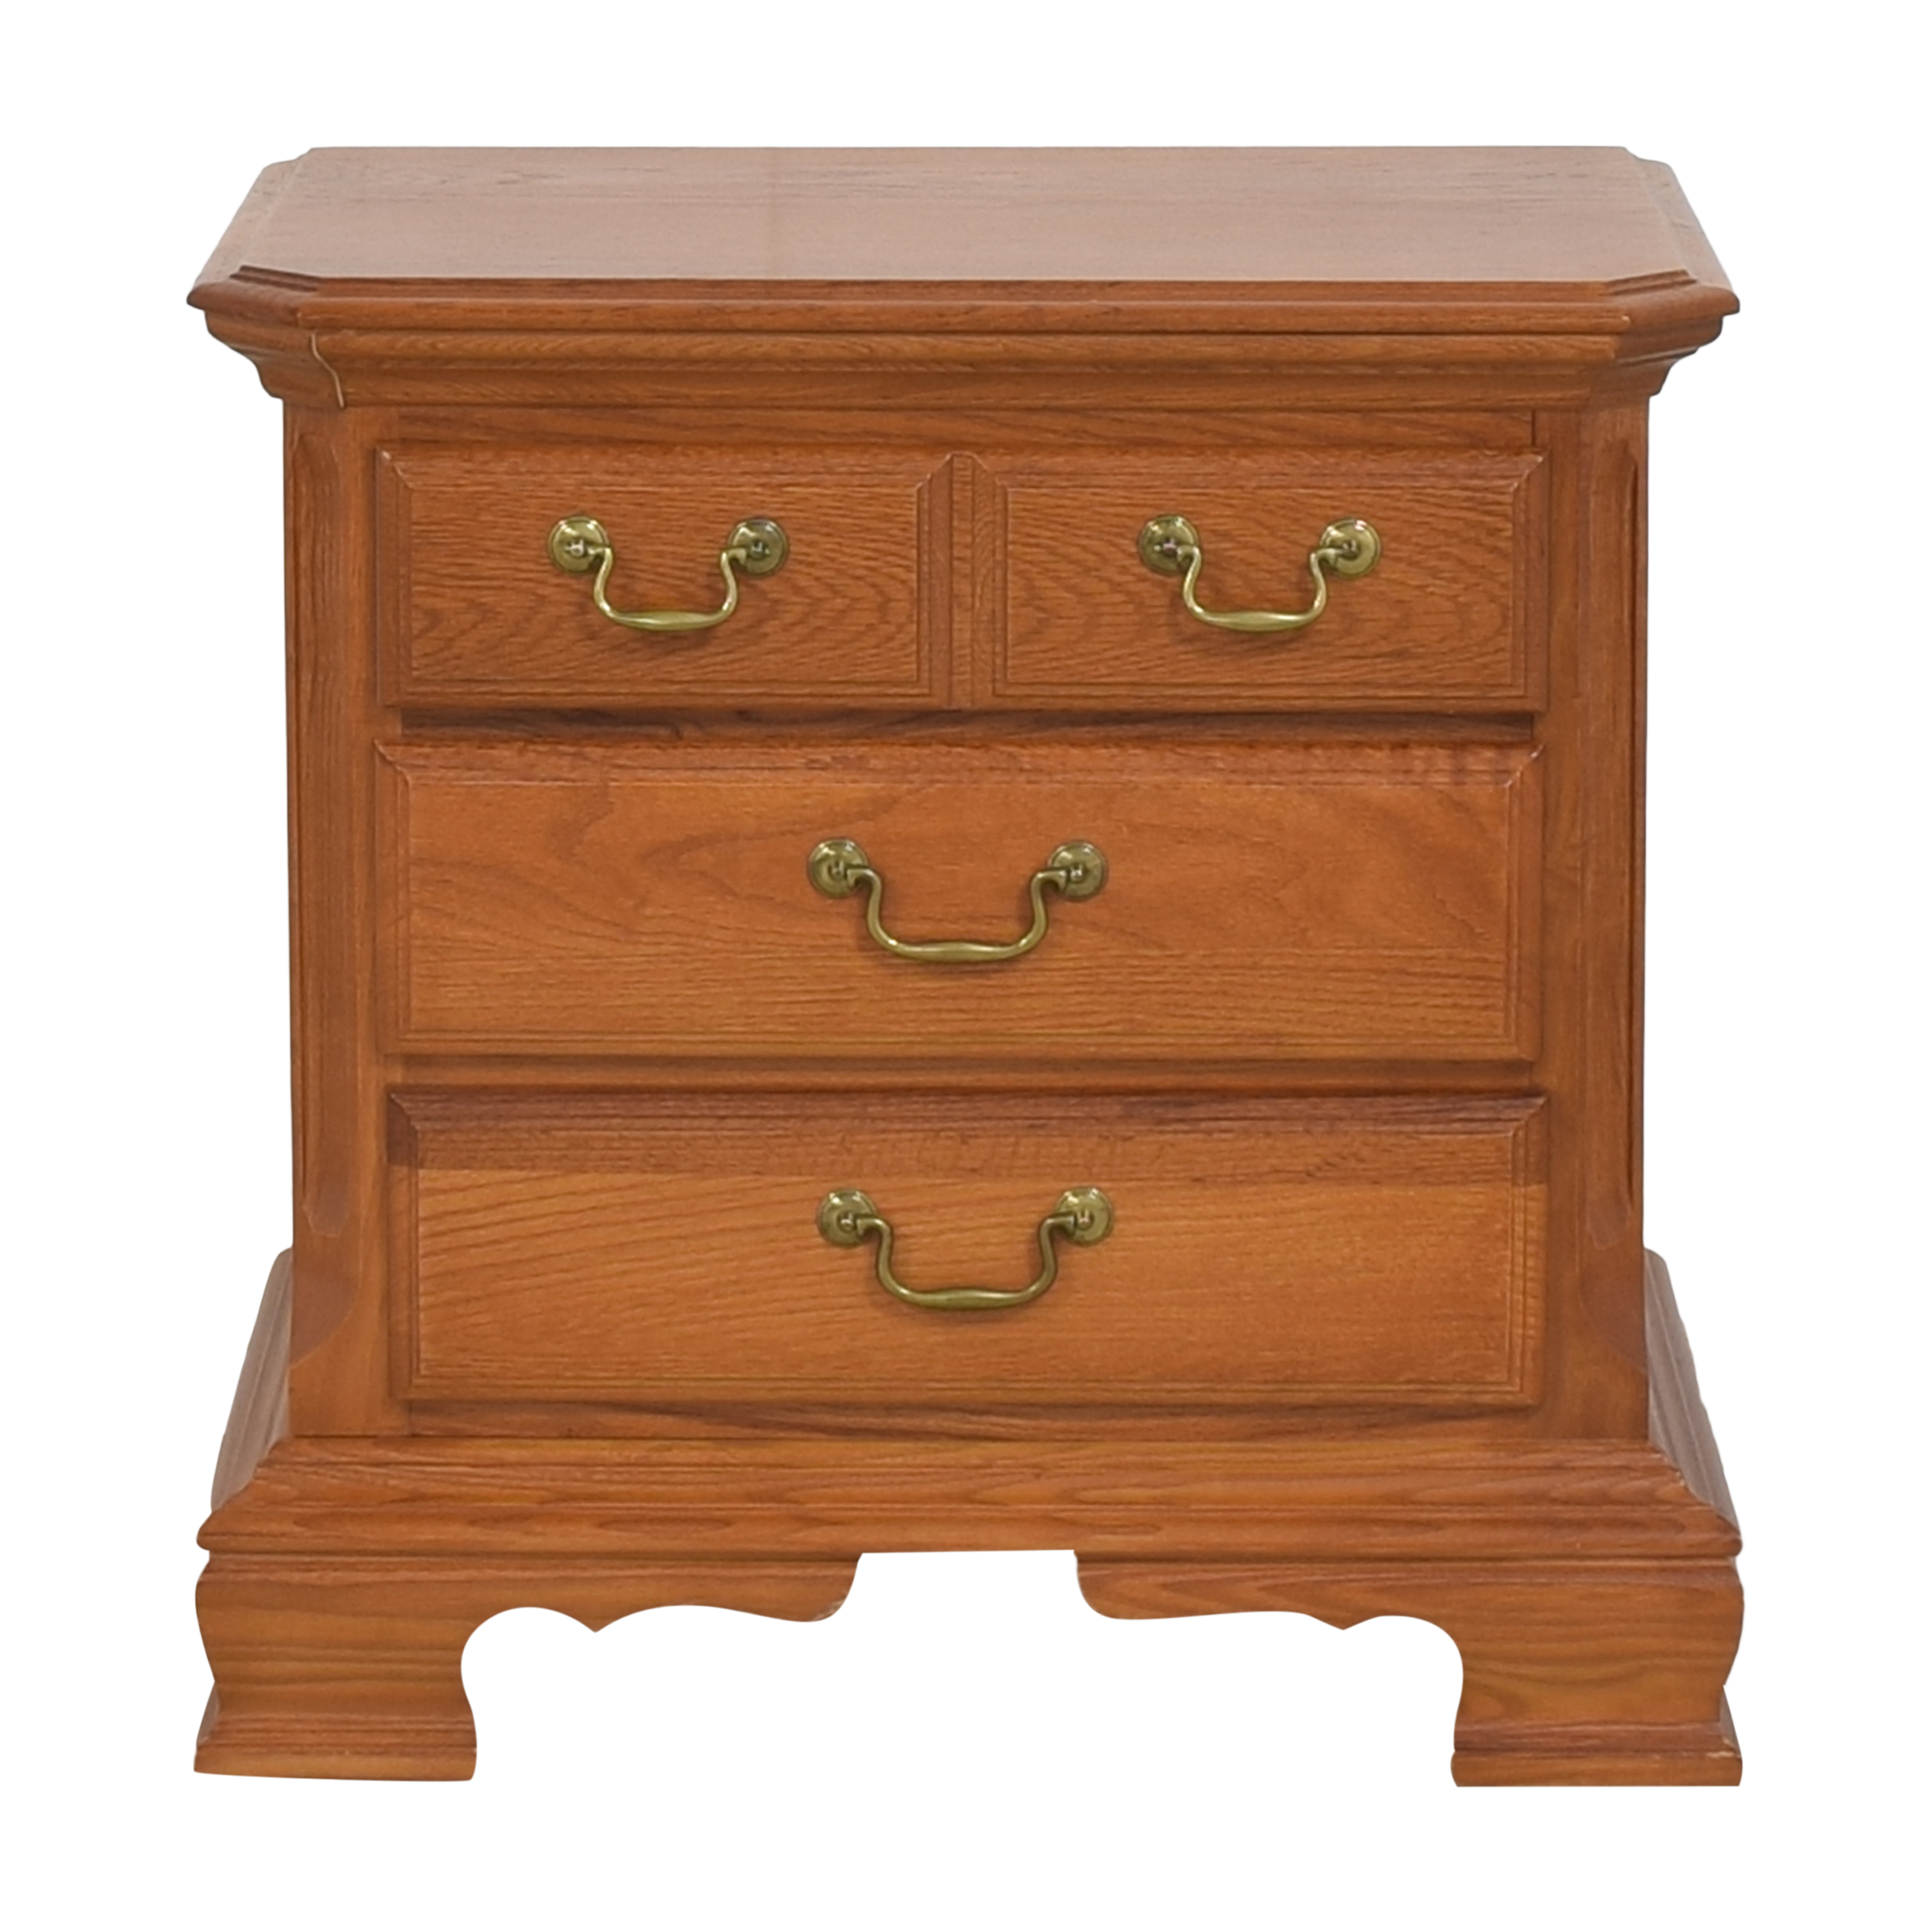 Sumter Cabinet Co. Sumter Cabinet Co. Three Drawer Nightstand Tables